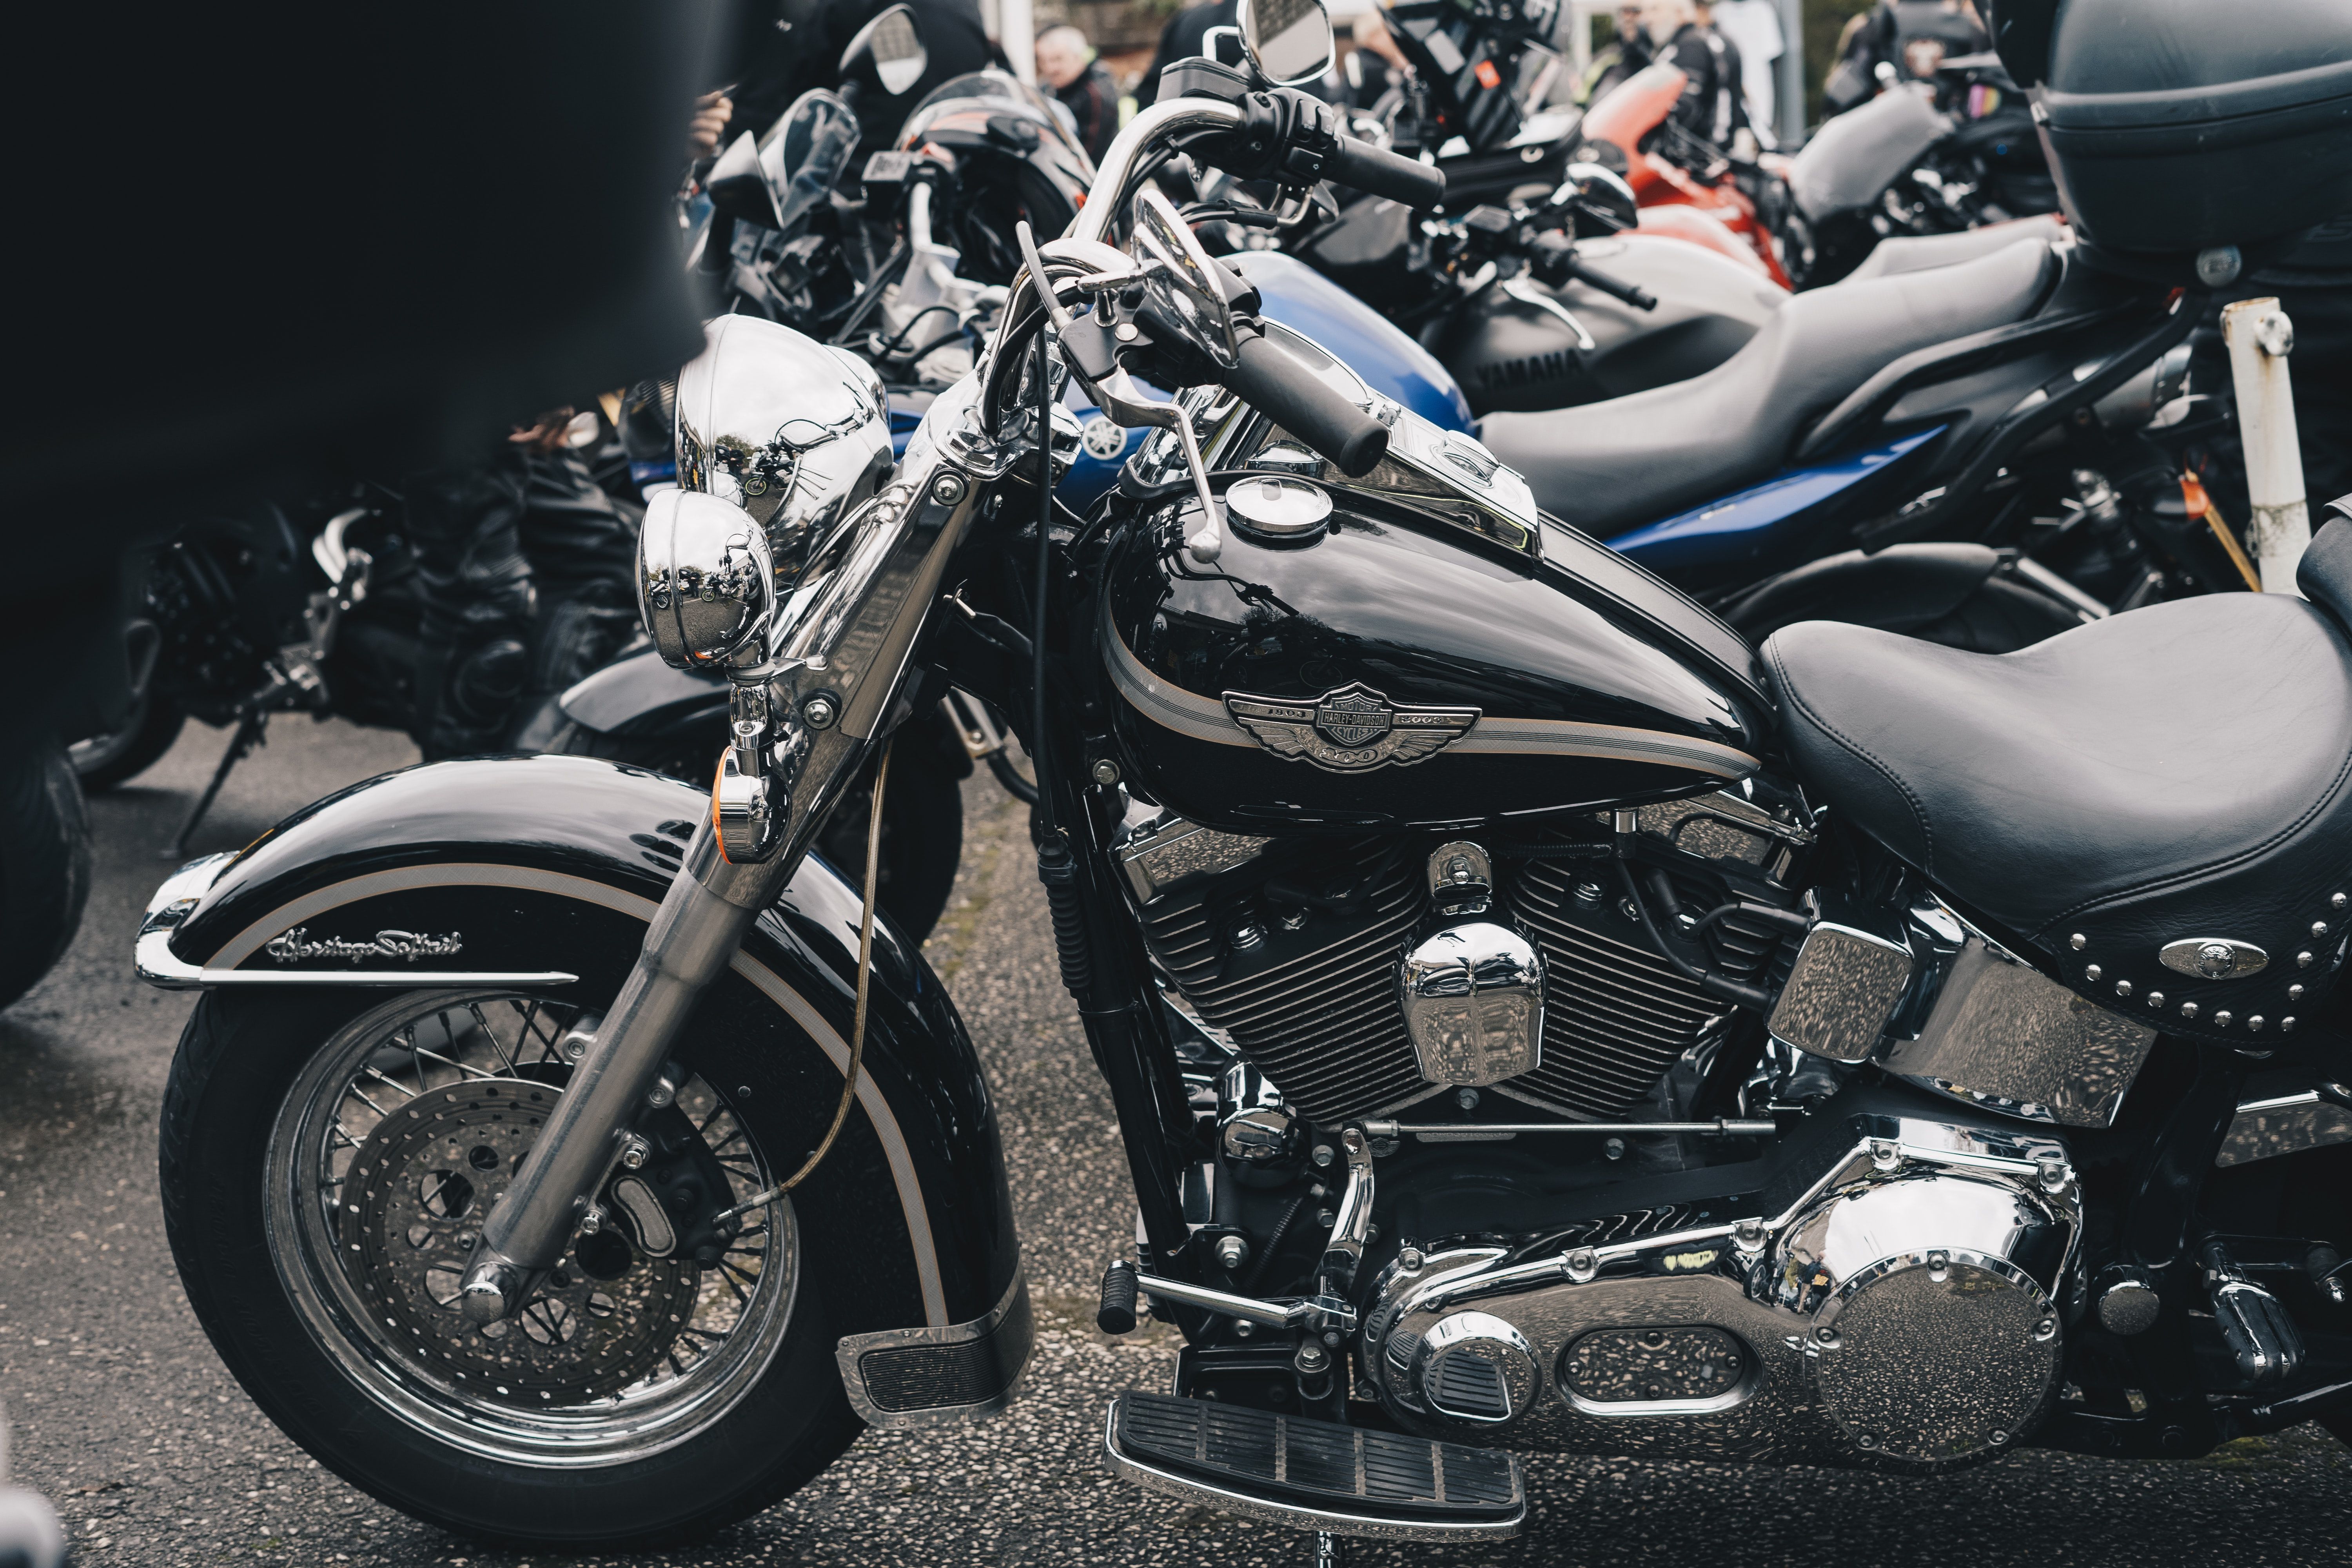 black cruiser motorcycle close-up photography